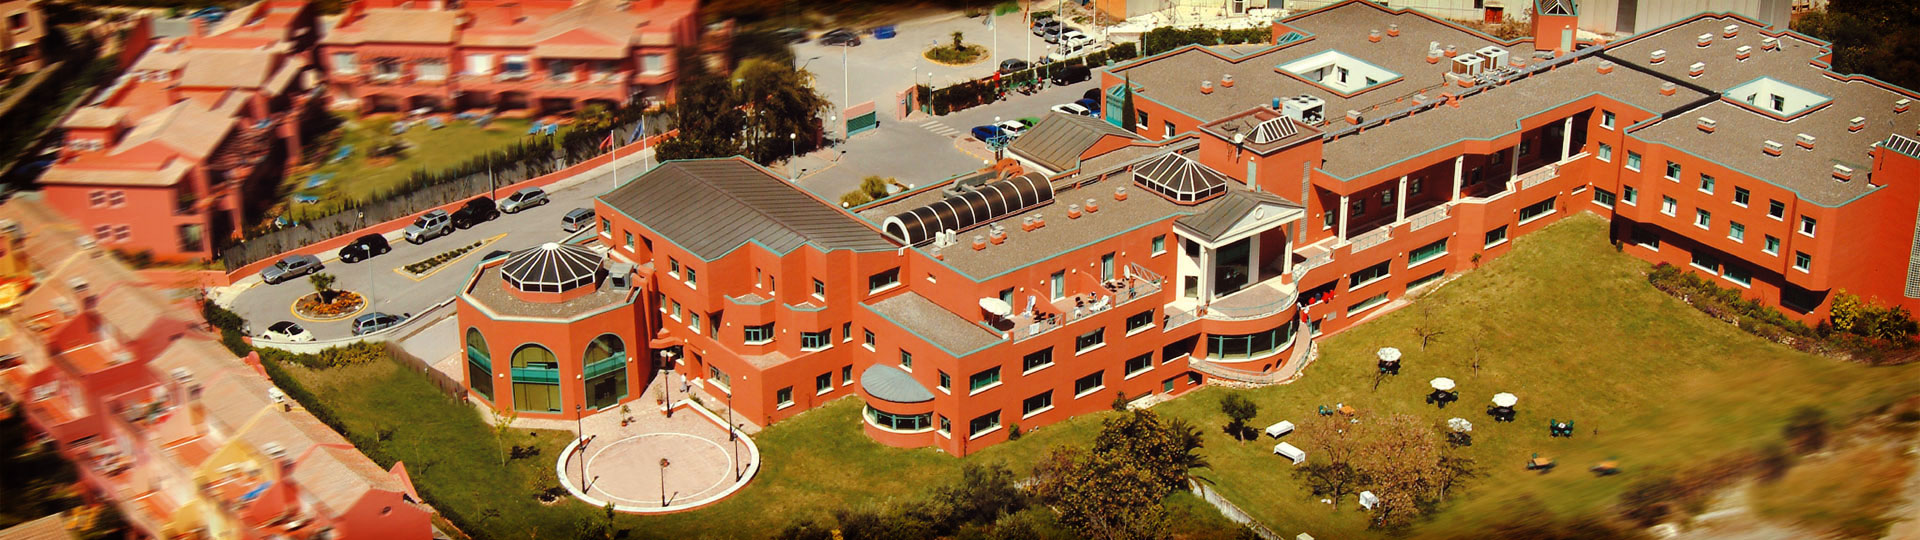 Les Roches Marbella Campus: aerial view